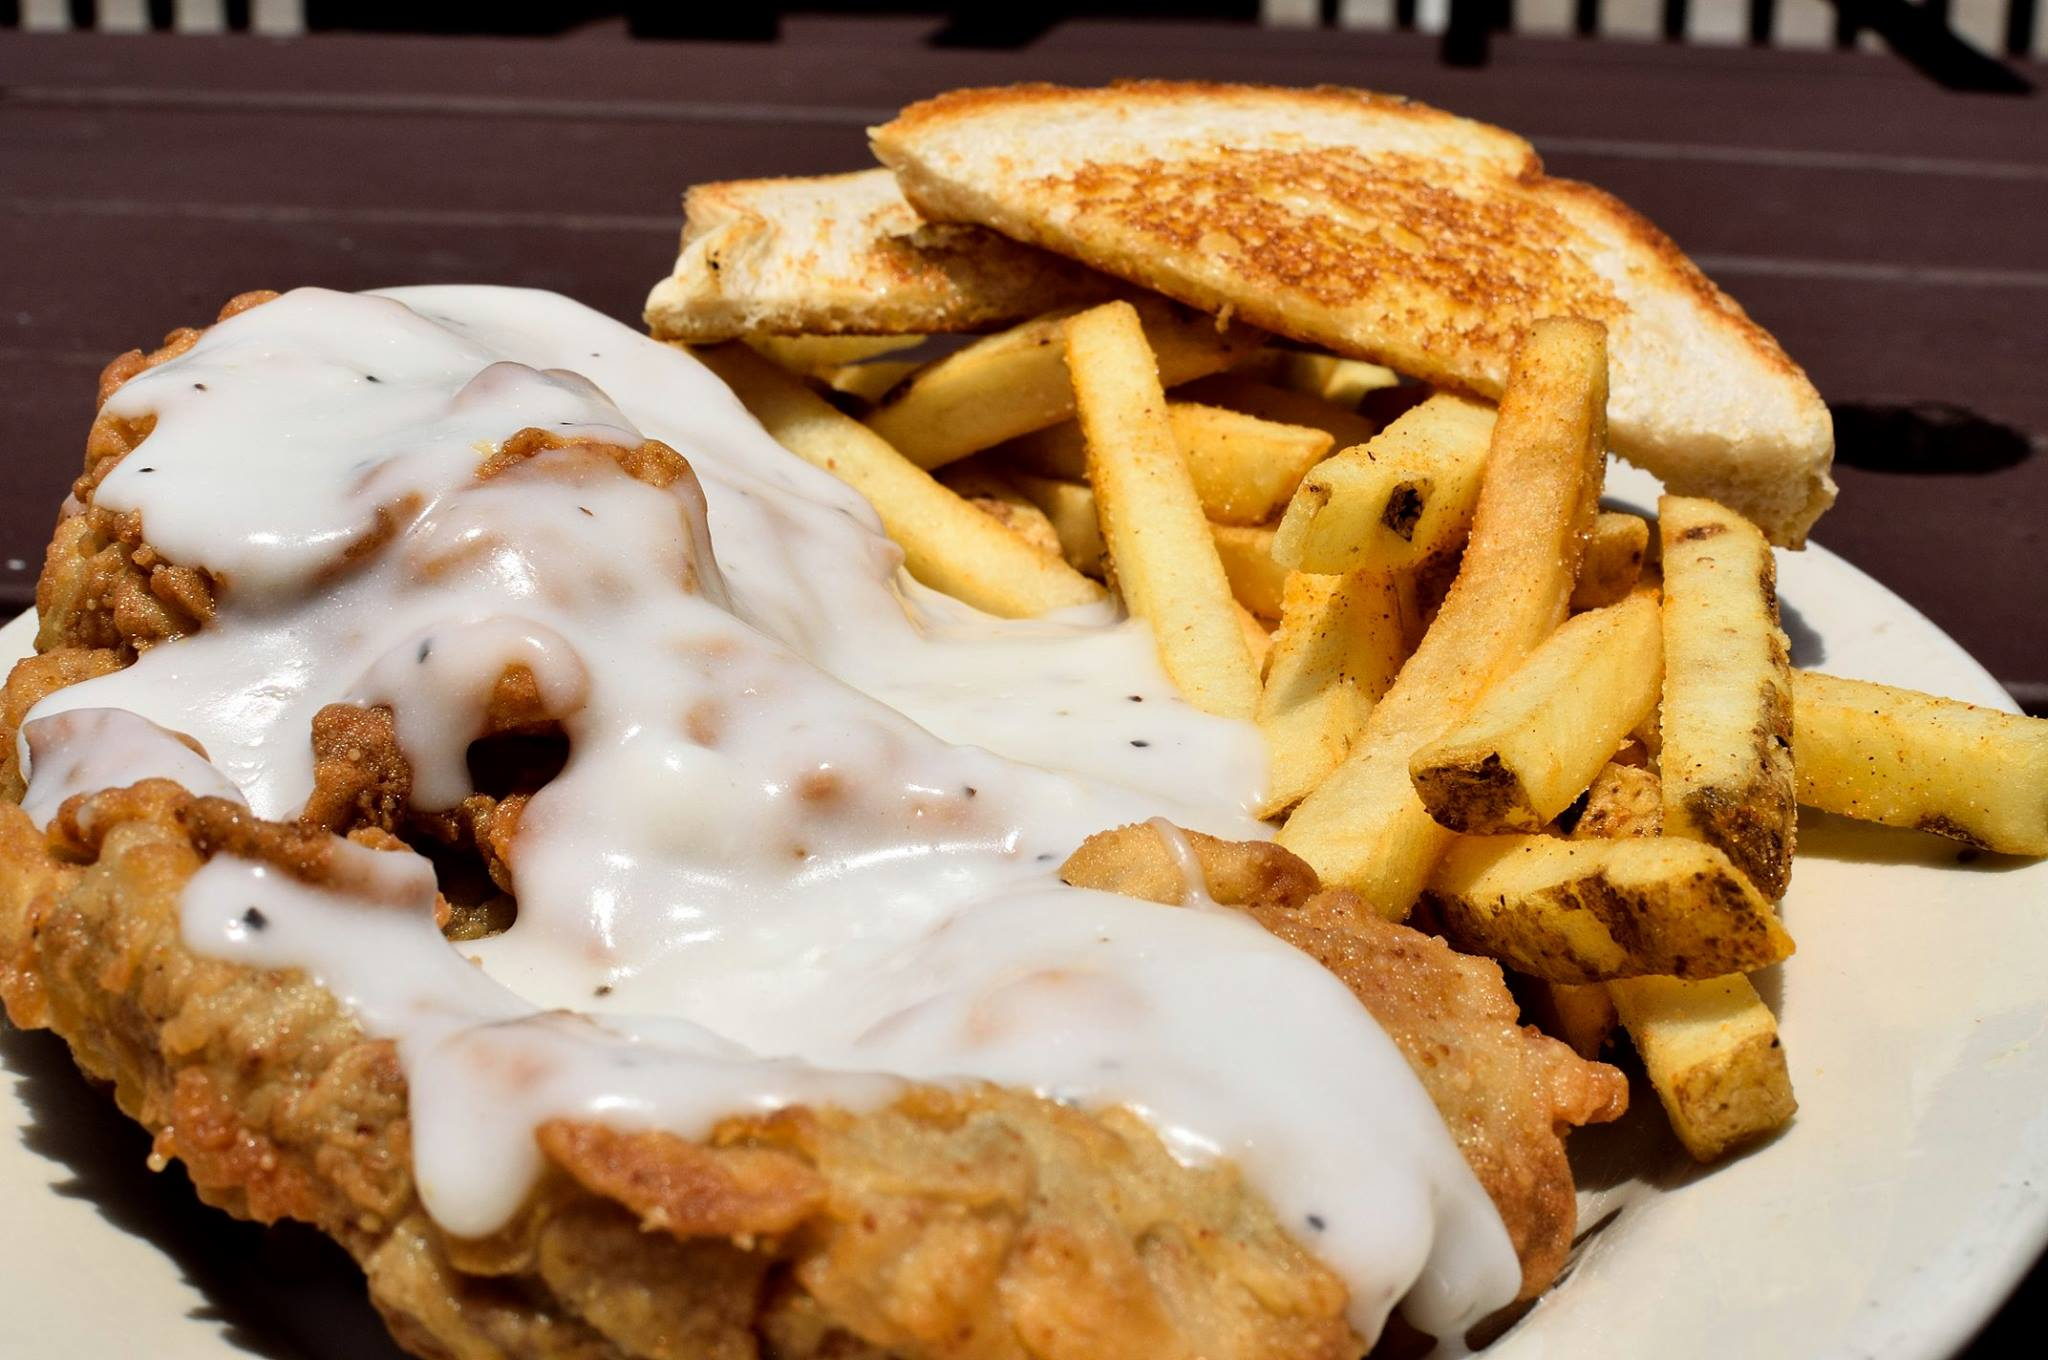 country fried steak topped with gravy, a side of french fries and toast